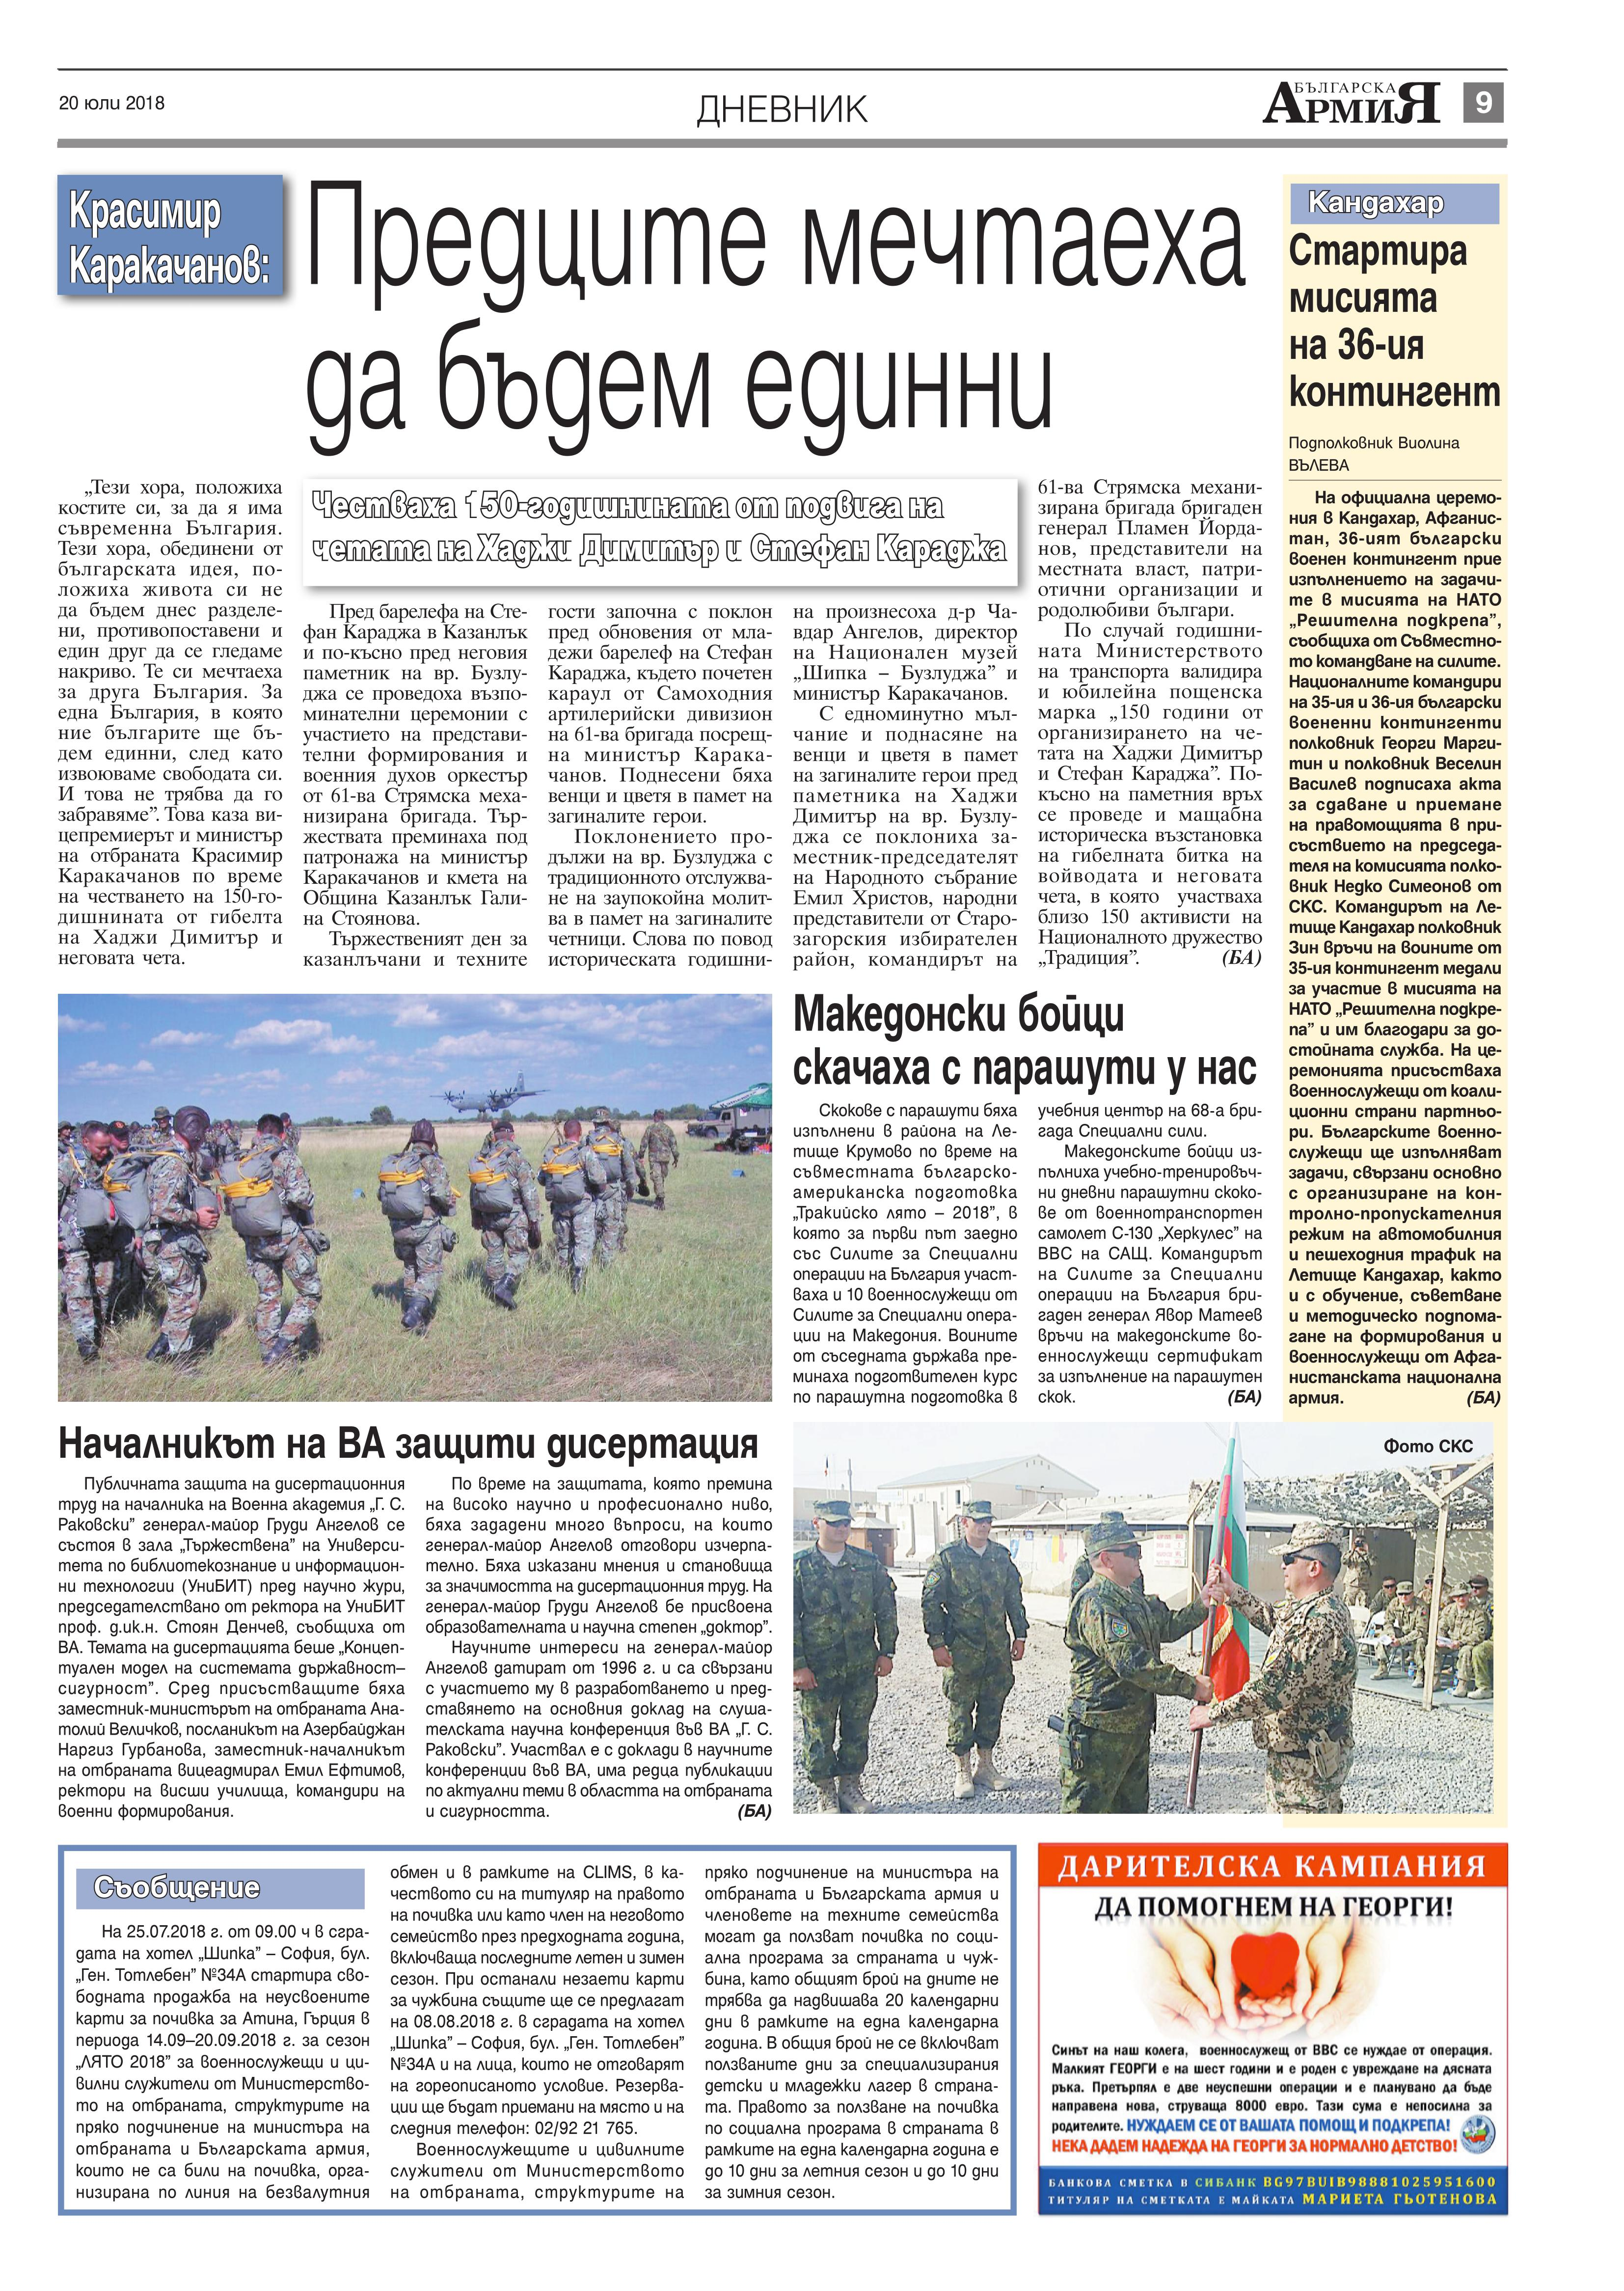 http://armymedia.bg/wp-content/uploads/2015/06/09.page1_-57.jpg